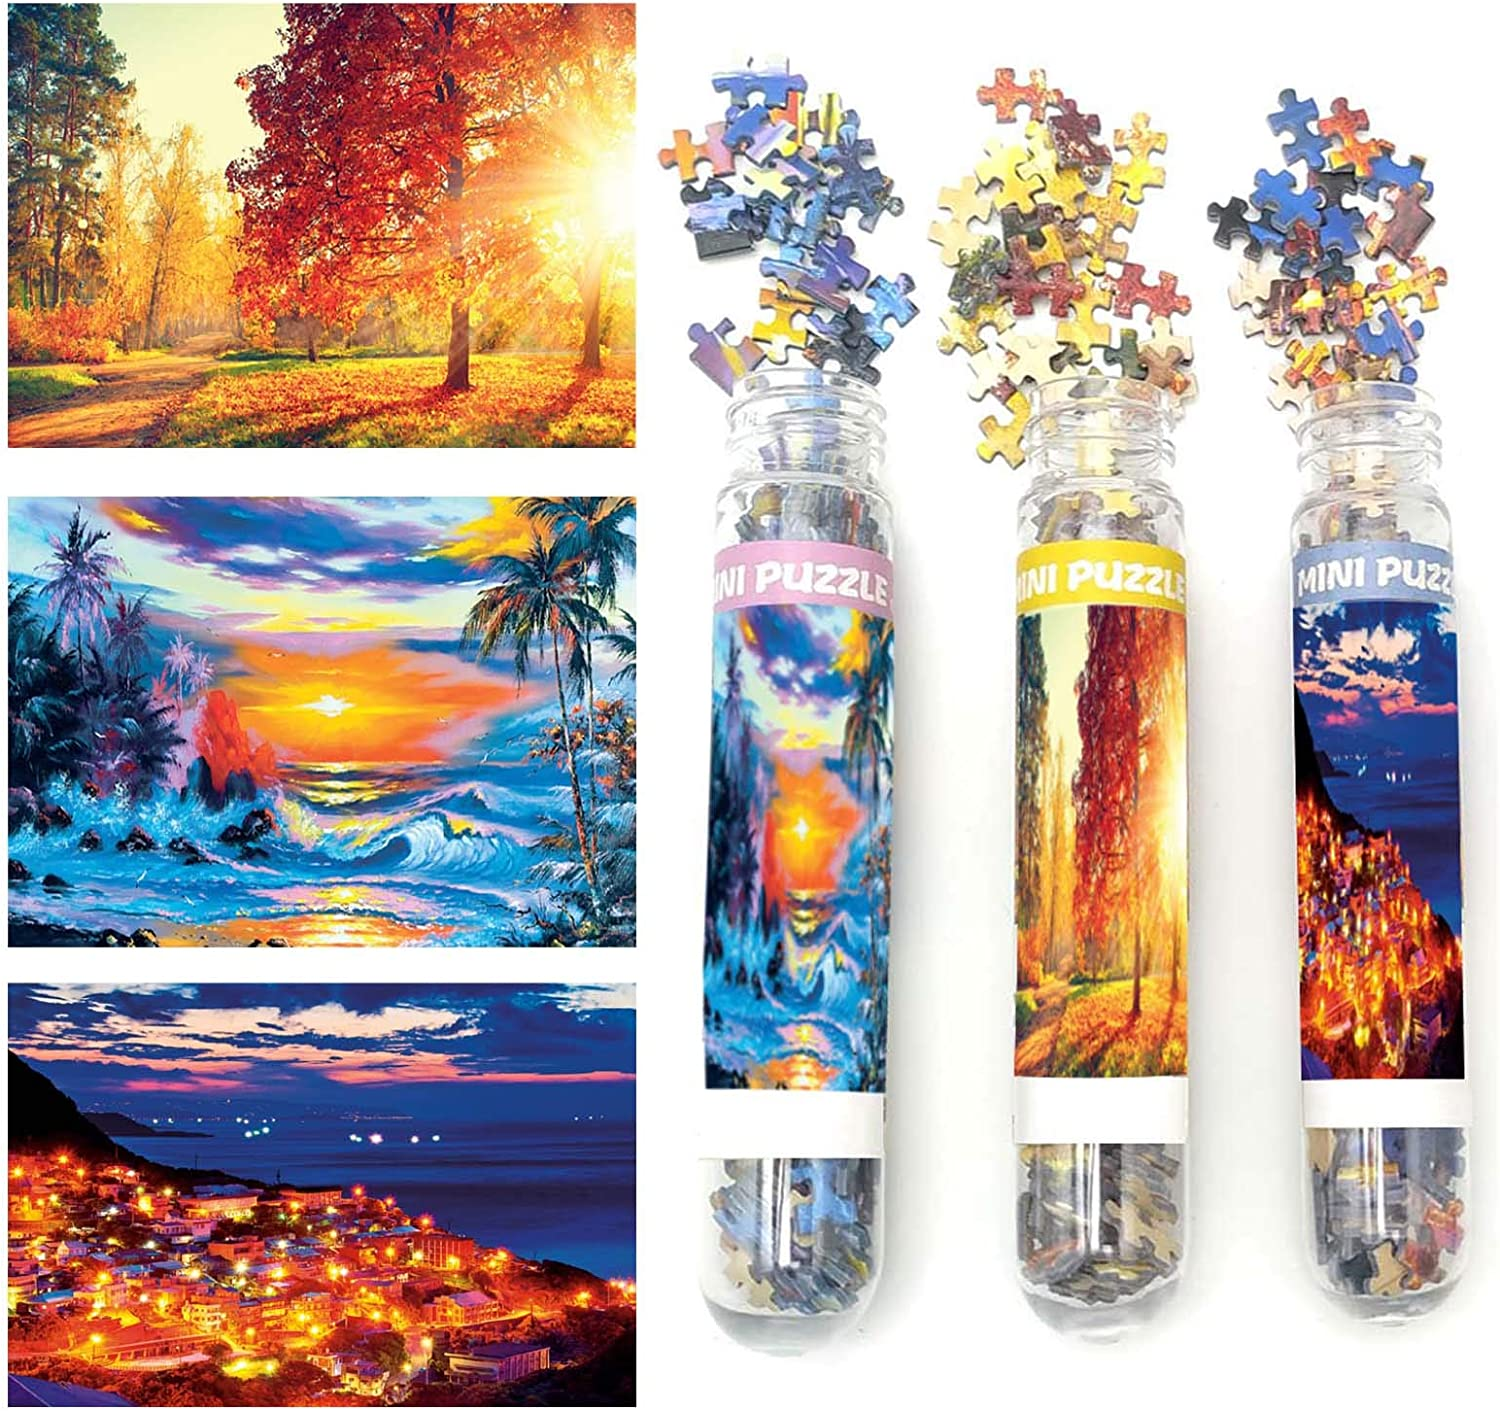 Small Jigsaw Puzzles for Adults Water Sky Sunrise Golden Trees Sunset Harbor Town Night 150 Pieces Jigsaw Puzzle Home Decor Entertainment Challenging Puzzle Difficult Puzzles 6 x 4 Inch, 3 Pack